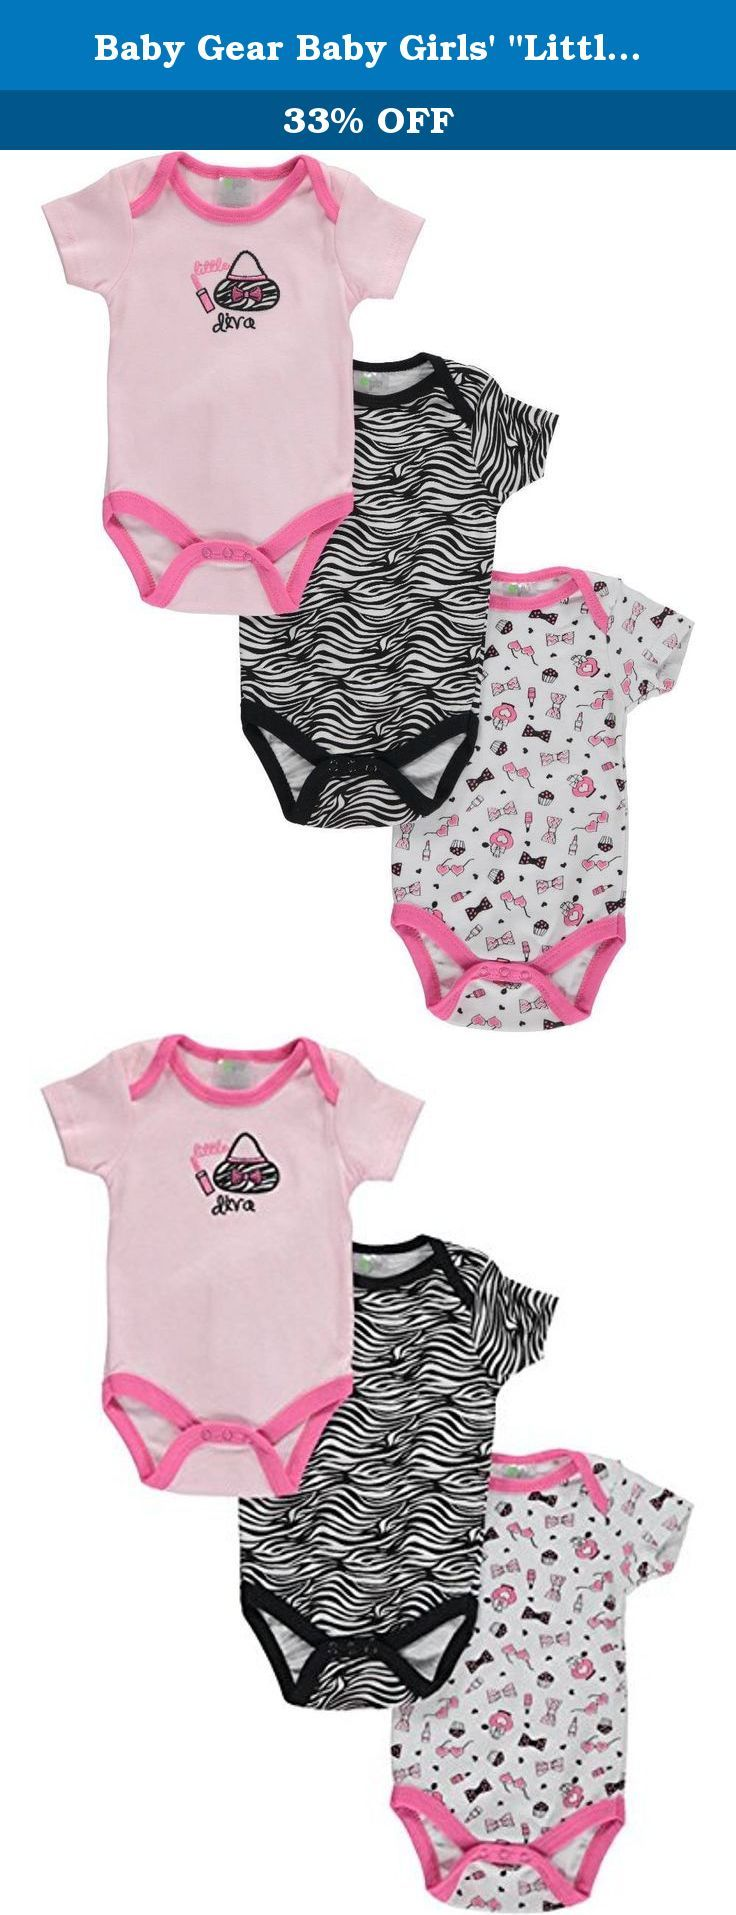 """Baby Gear Baby Girls' """"Little Diva"""" 3-Pack Bodysuits - pink/multi, 6 - 9 months. Stock up on 100% cotton bodysuits with this 3-pack from Baby Gear! Lap collars, easy-change snaps at bottom, appliques and prints as shown. 100% Cotton Machine Wash Cold Imported."""